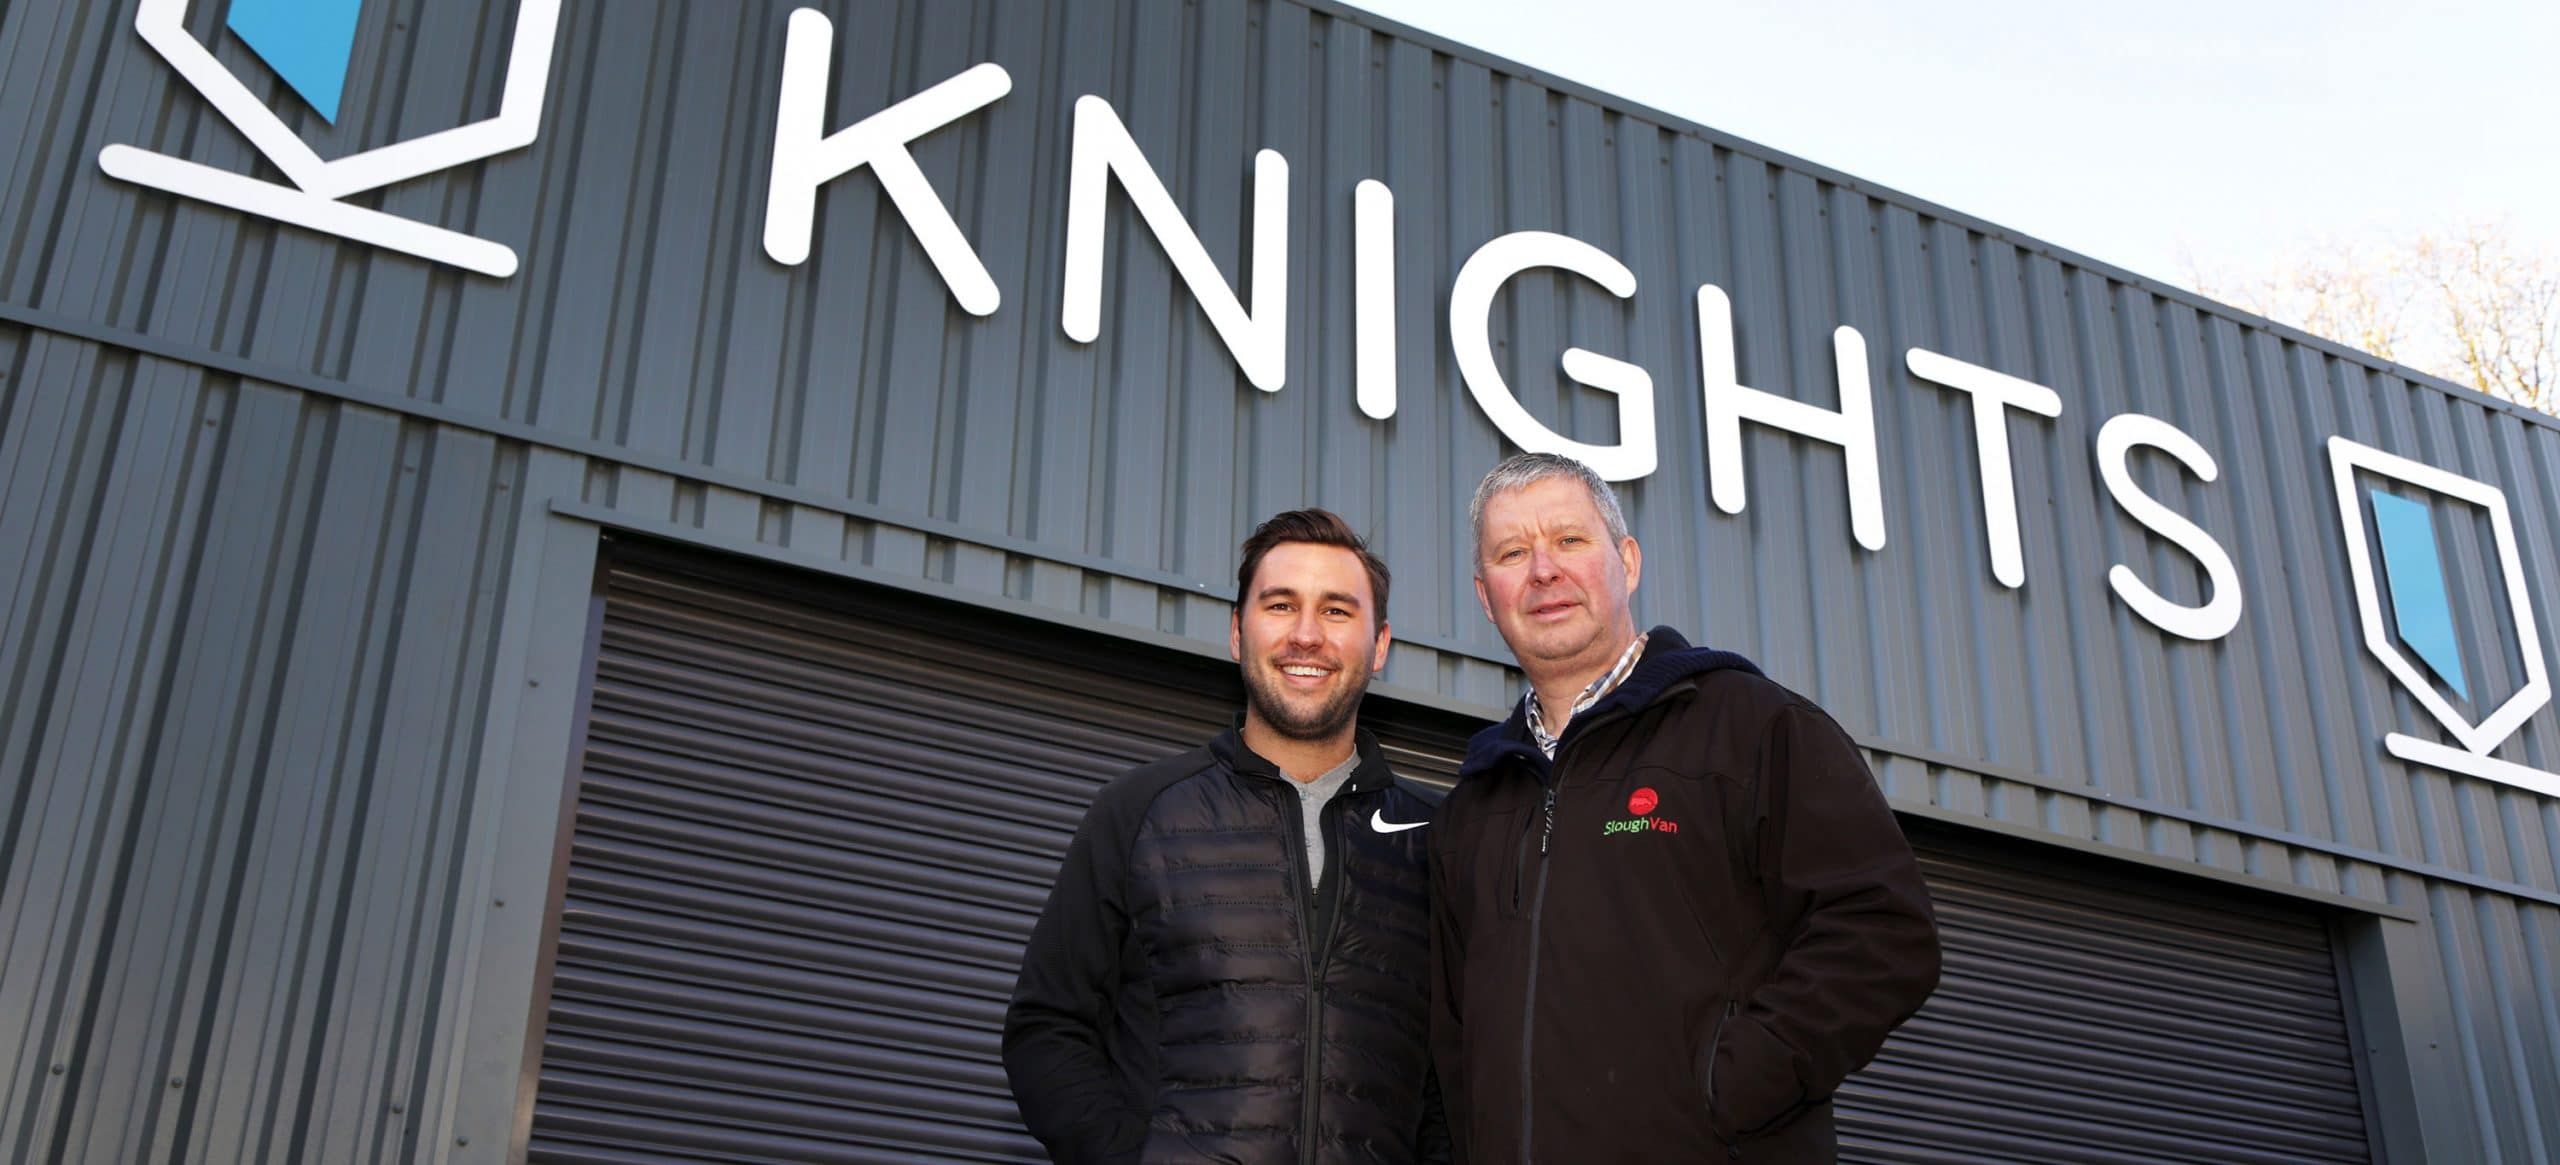 Charlie Willis and Mark of Knights Van Hire